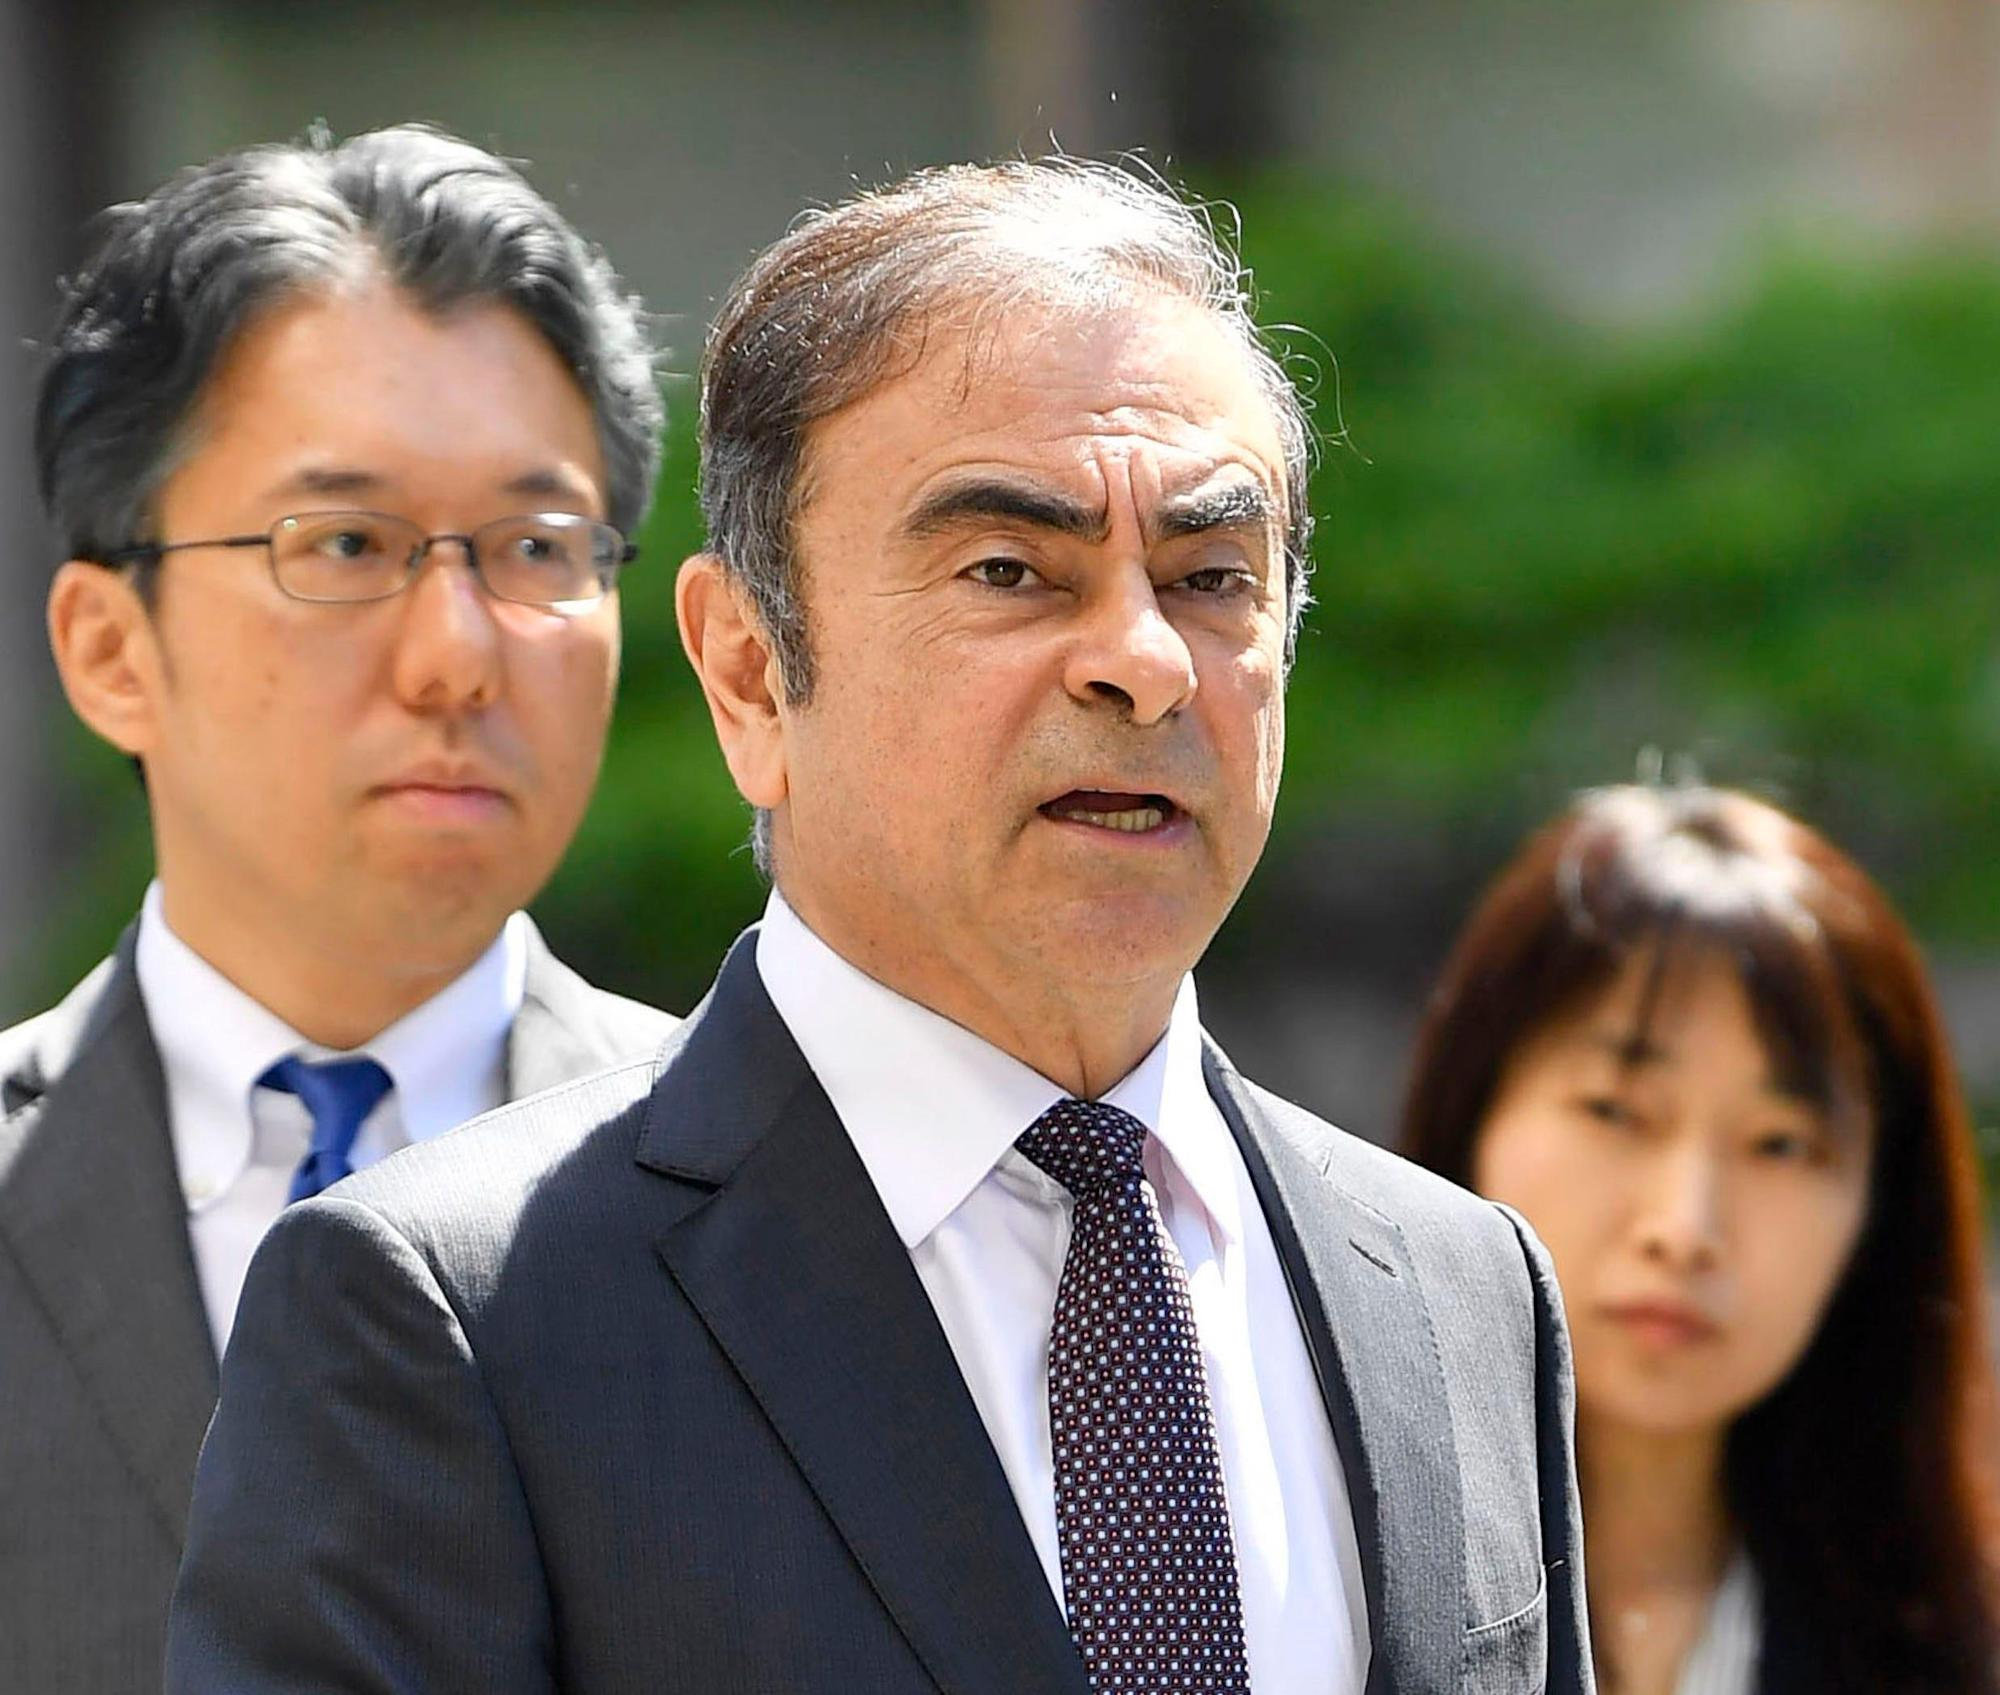 Supreme Court OKs extradition of U.S. citizens accused of 'brazen' escape of Carlos Ghosn - Yahoo News